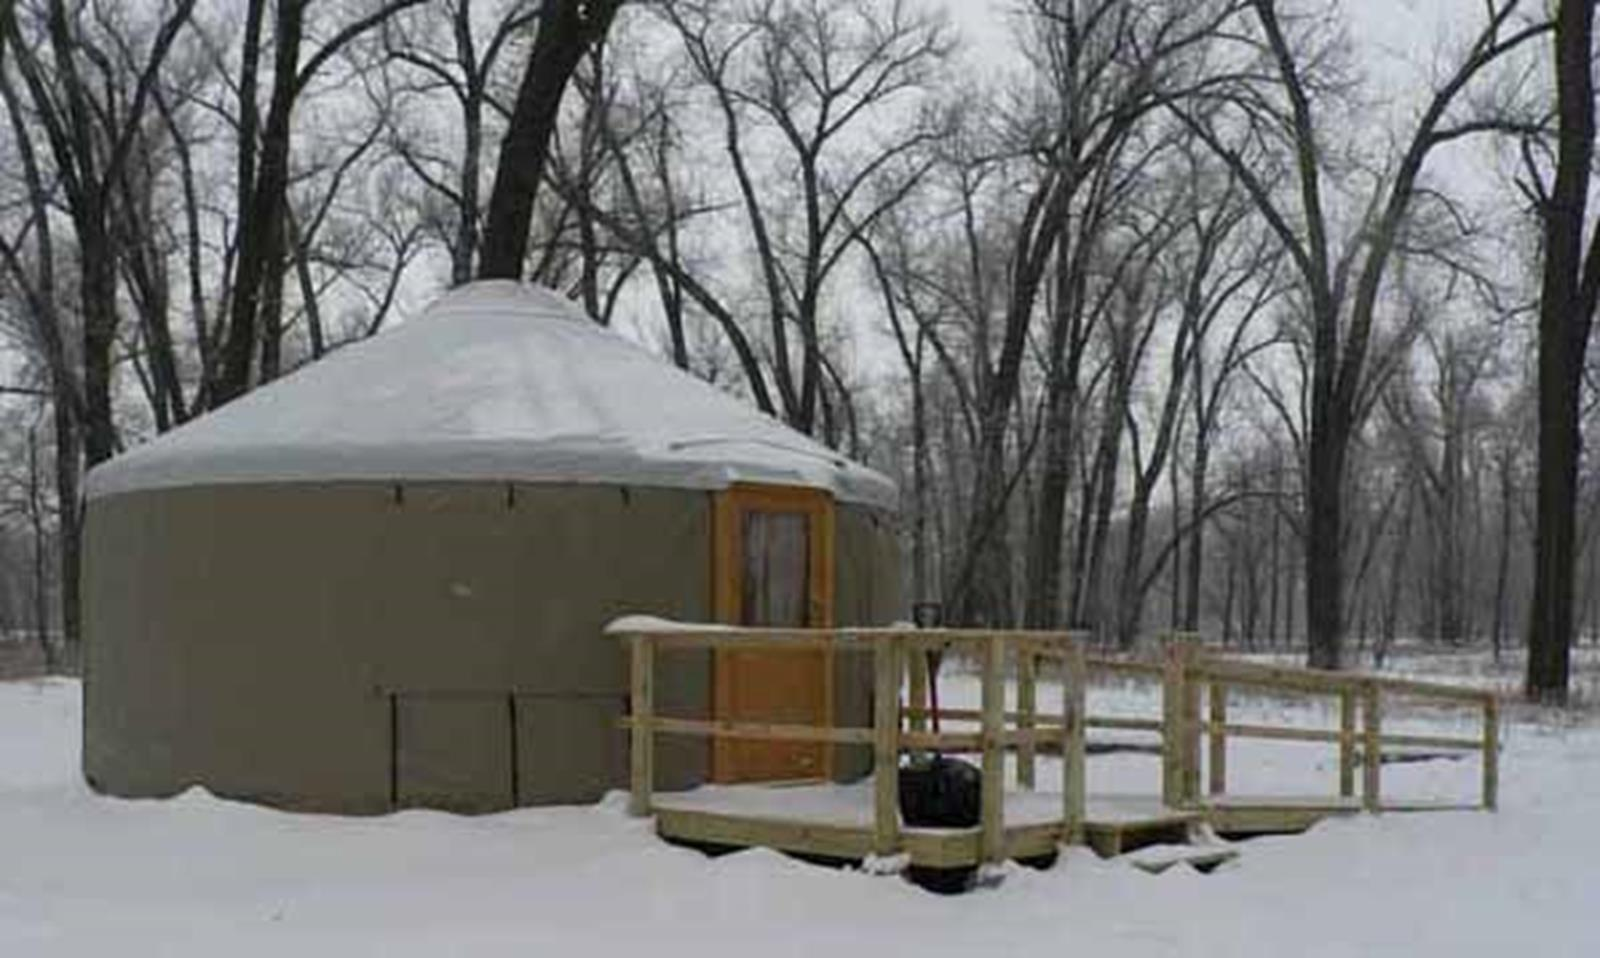 Primitive camping yurt, Cross Ranch State Park. Credit: ND Parks & Rec.